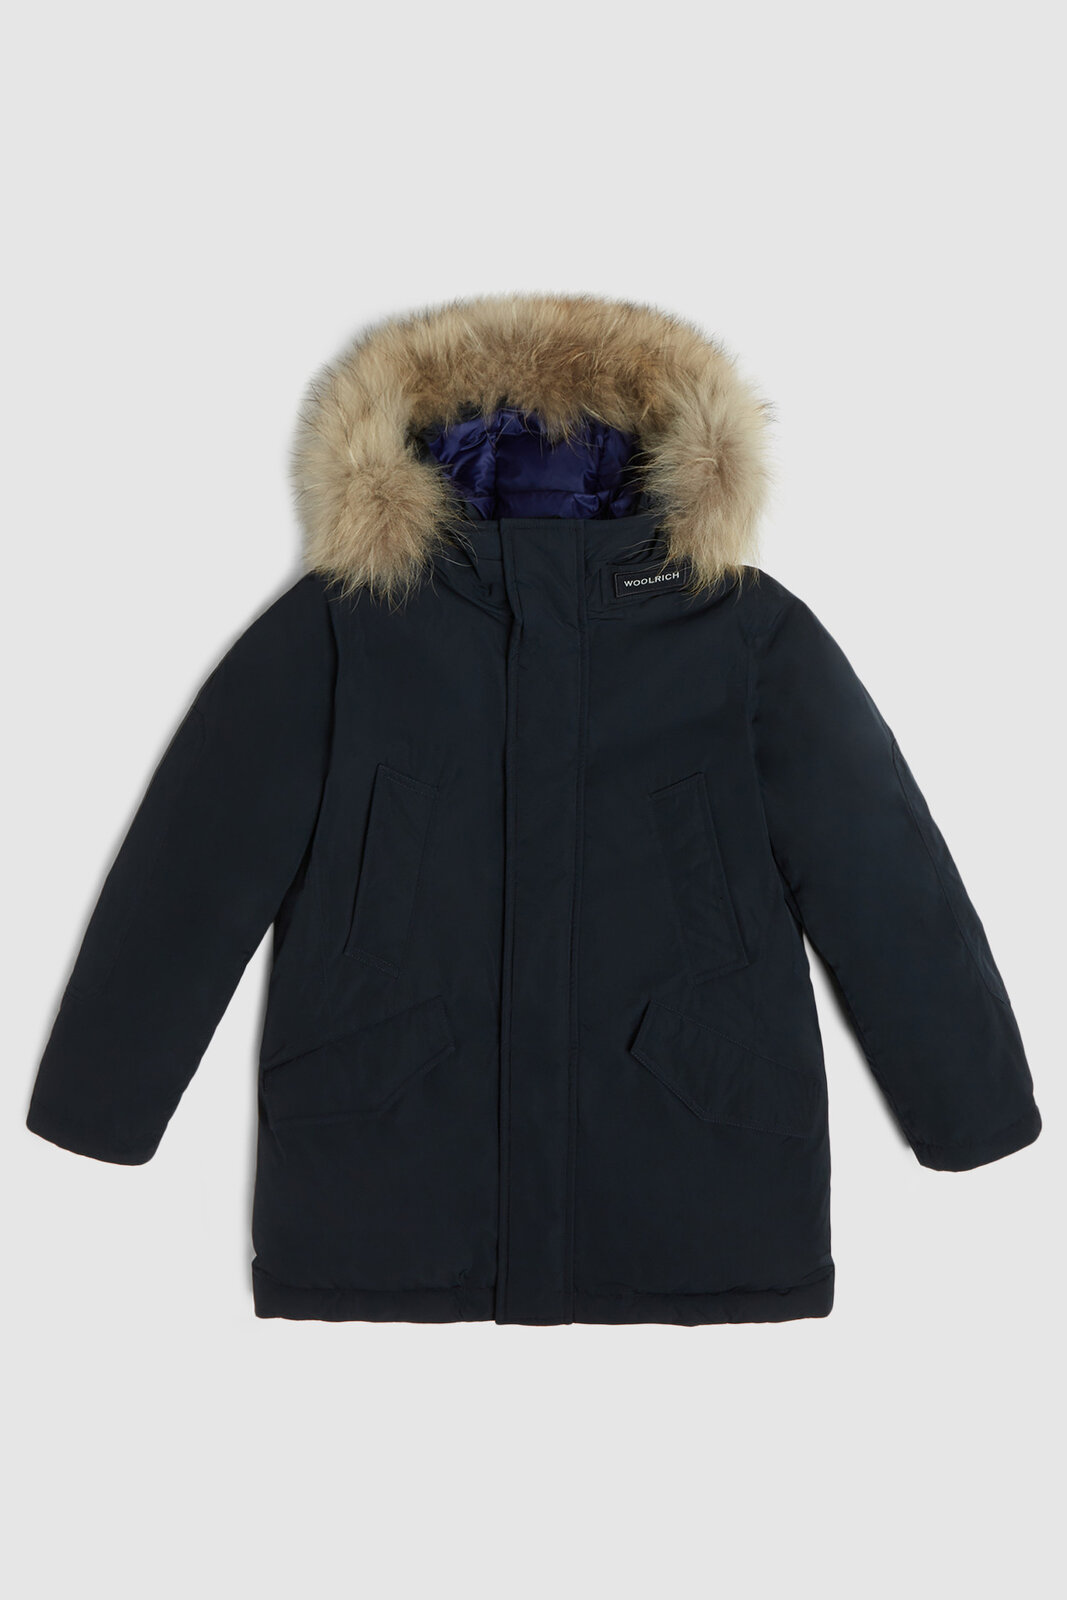 Polar Parka - Woolrich Junior